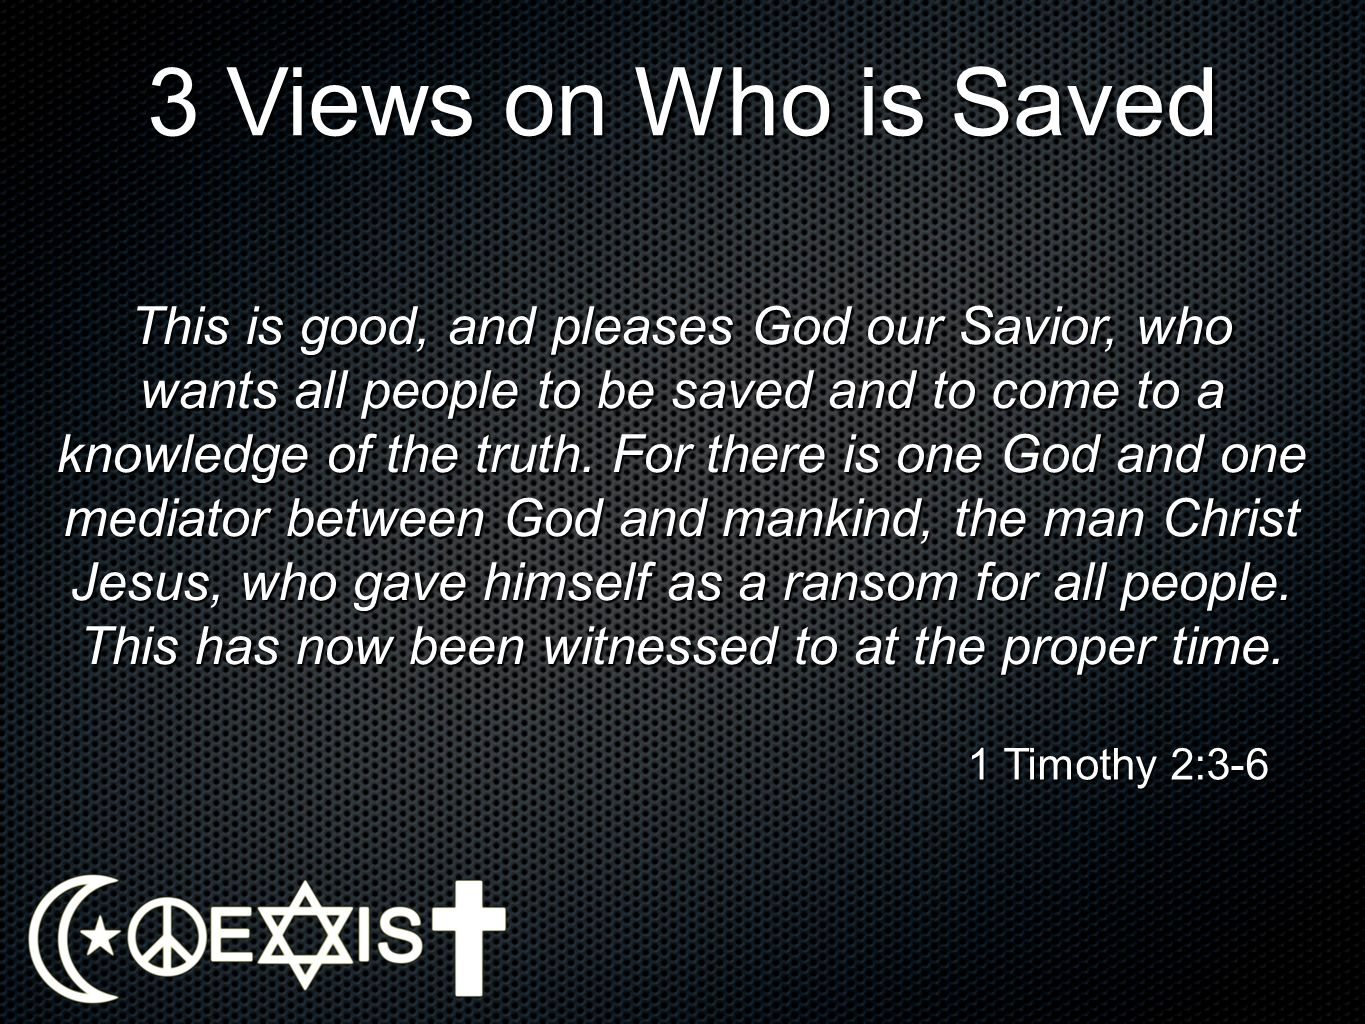 3 Views on Who is Saved This is good, and pleases God our Savior, who wants all people to be saved and to come to a knowledge of the truth. For there